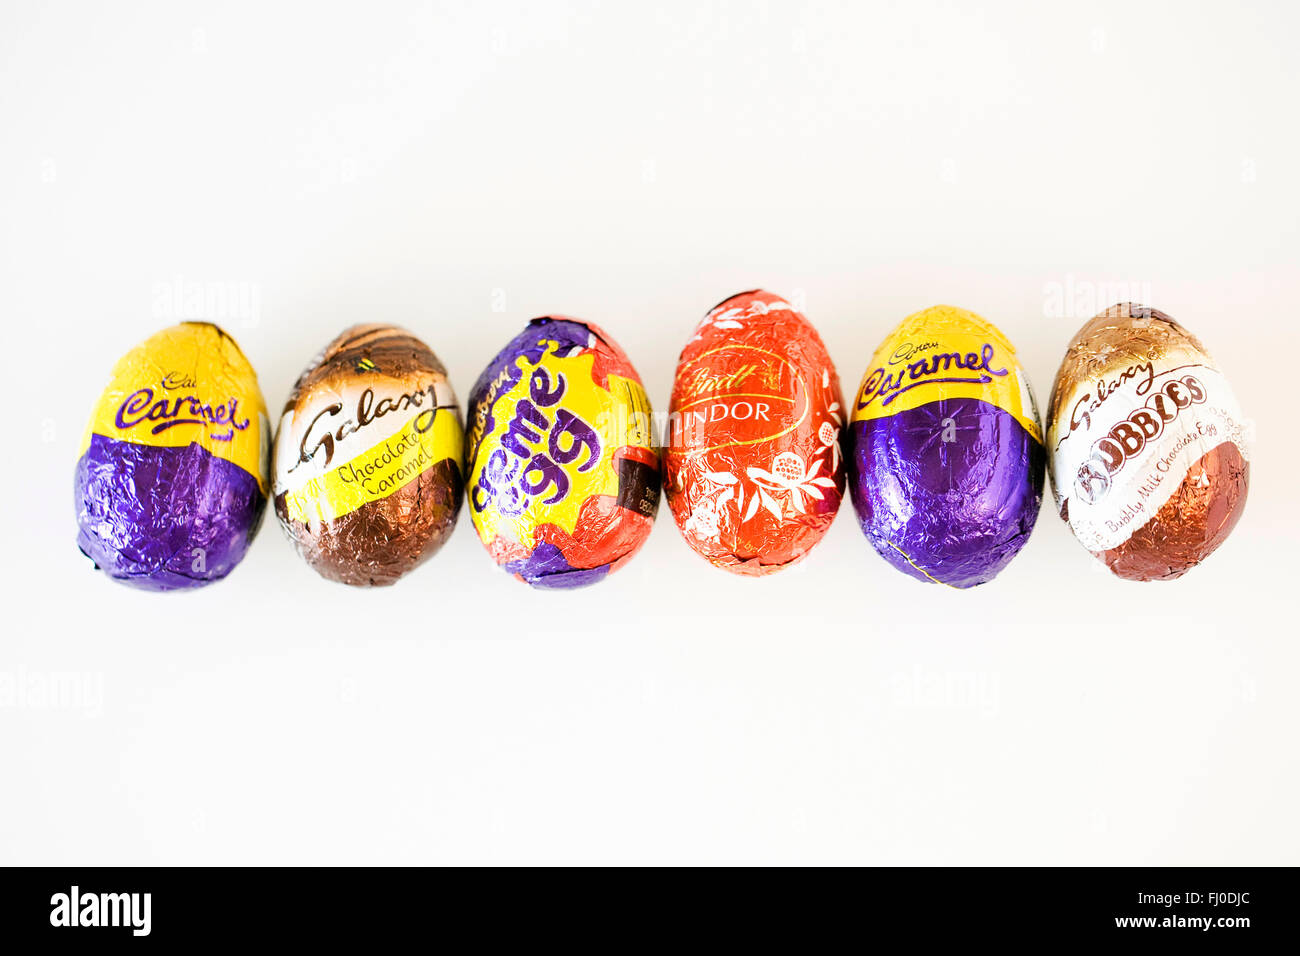 Assorted chocolate eggs on a white background. - Stock Image